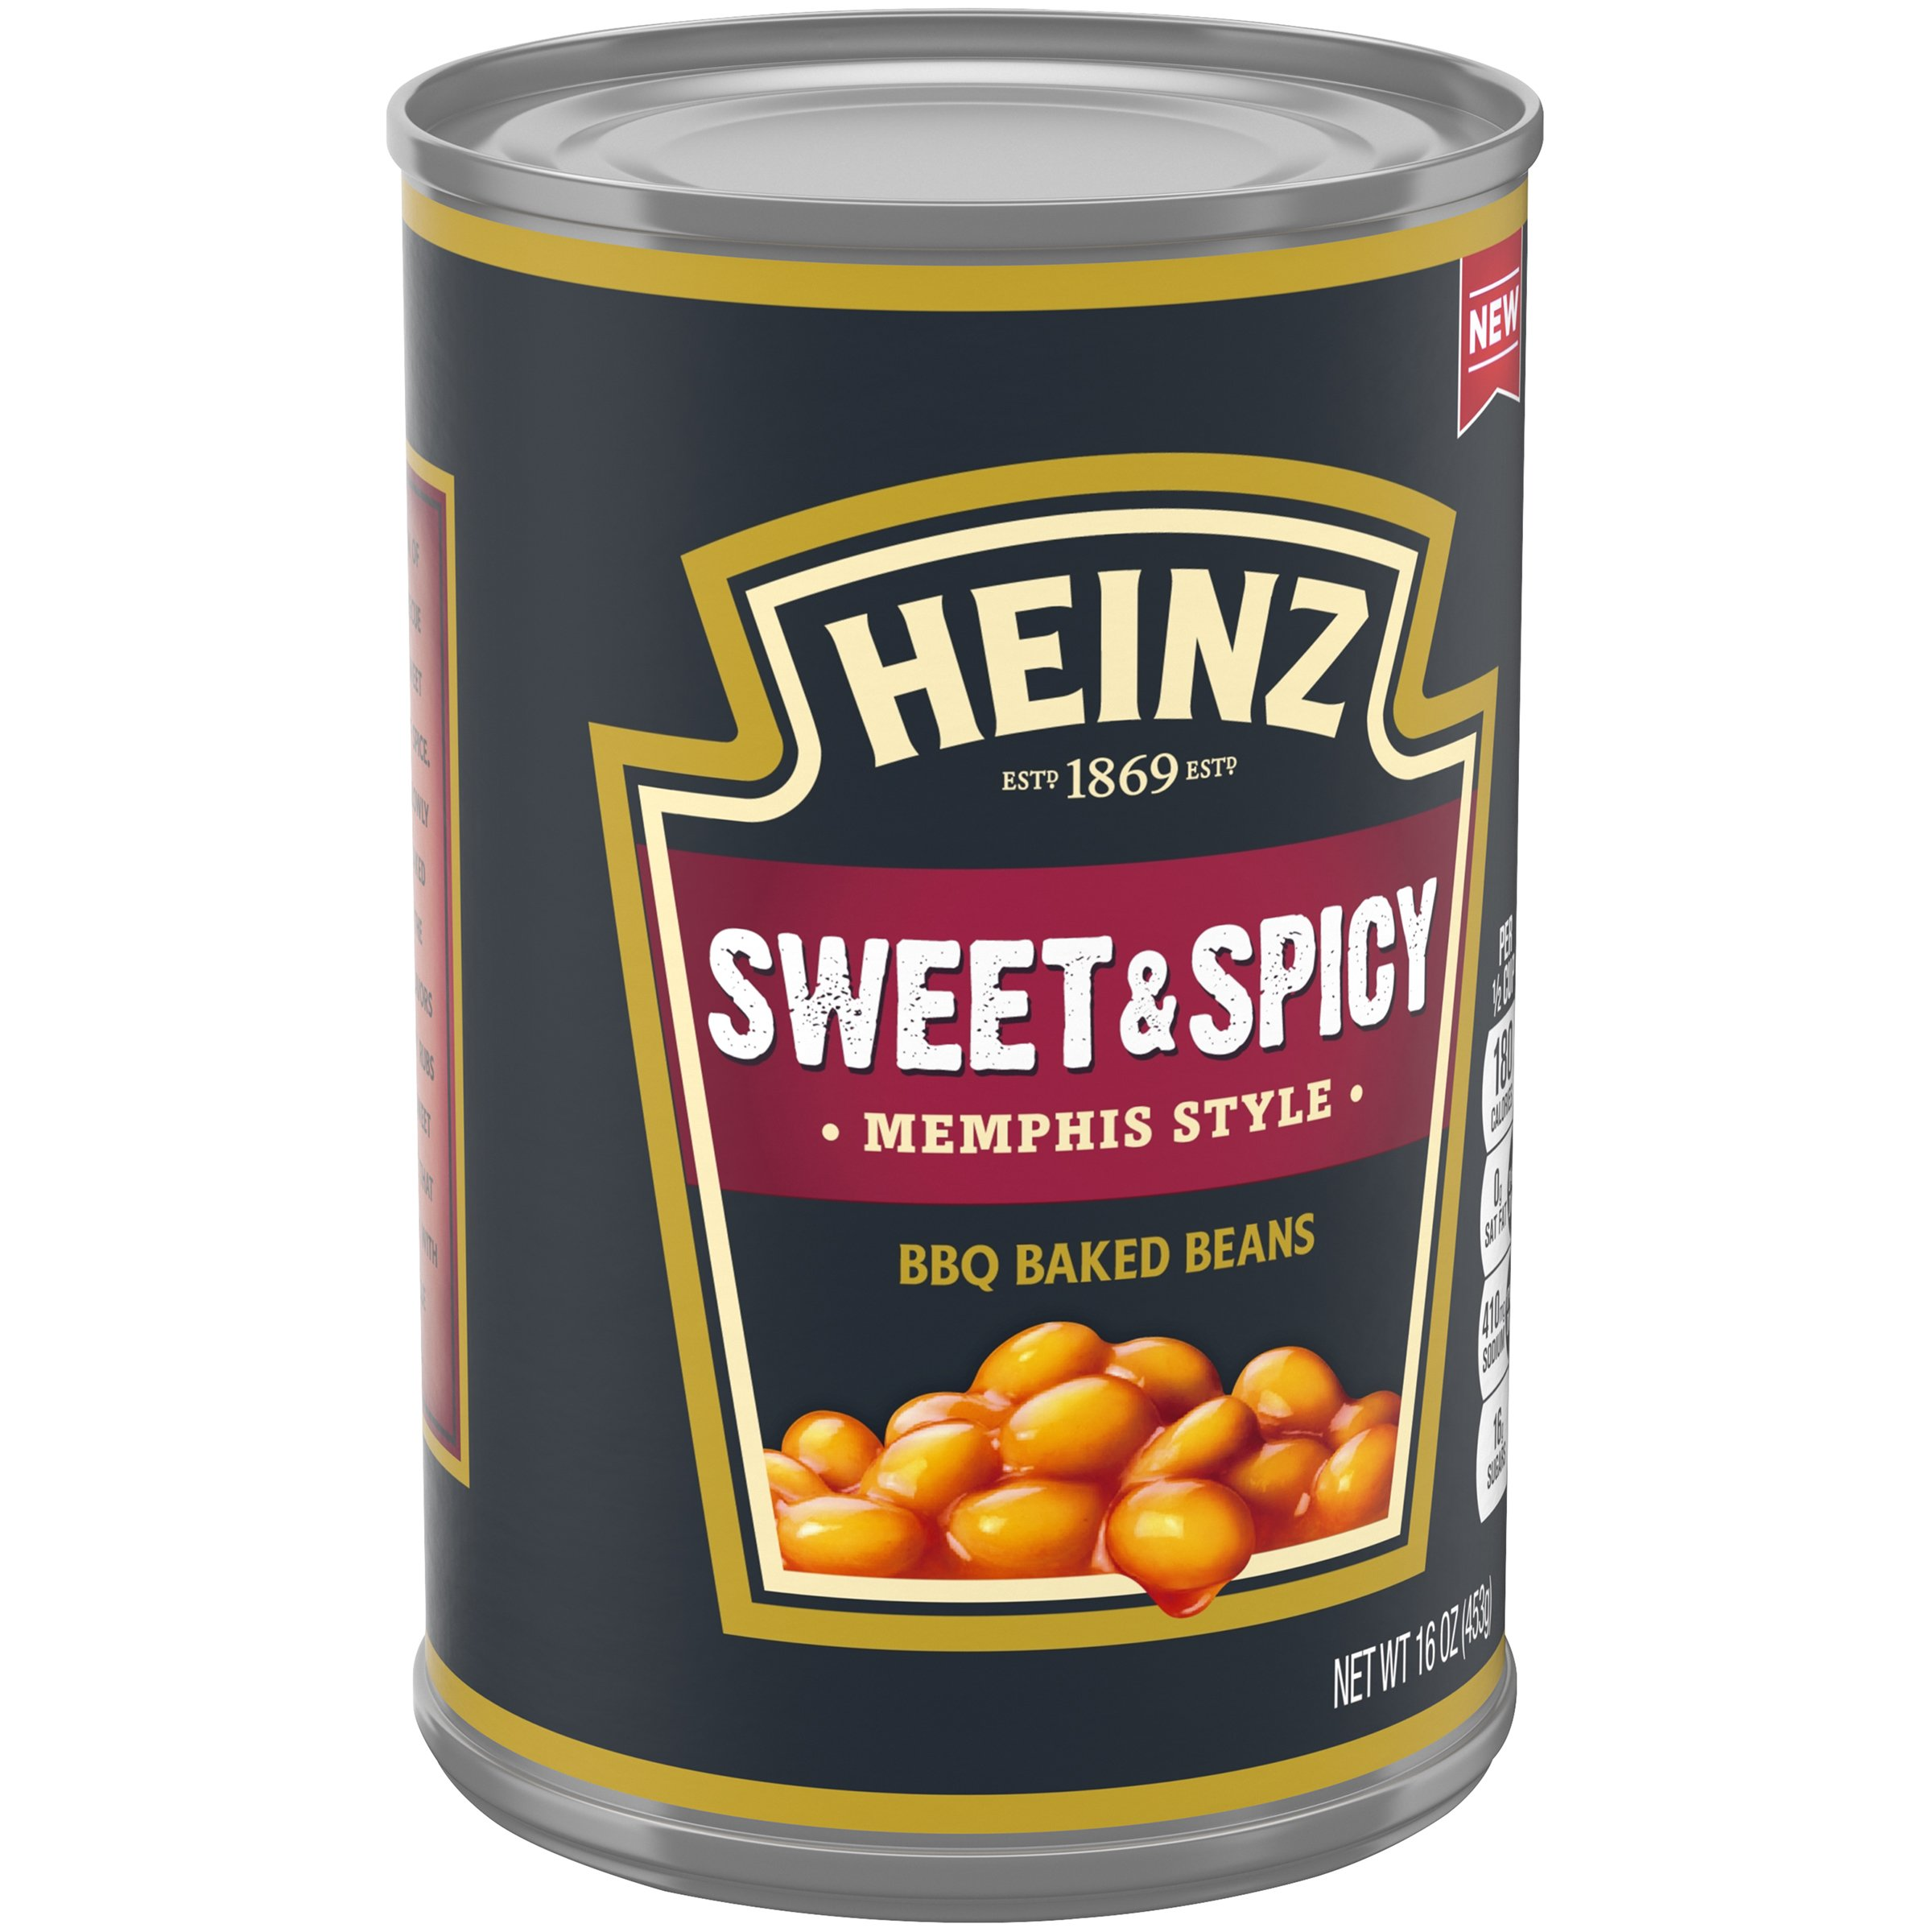 Heinz Memphis Style Sweet & Spicy BBQ Baked Beans Can, 16 Ounce (Pack of 12) by Heinz